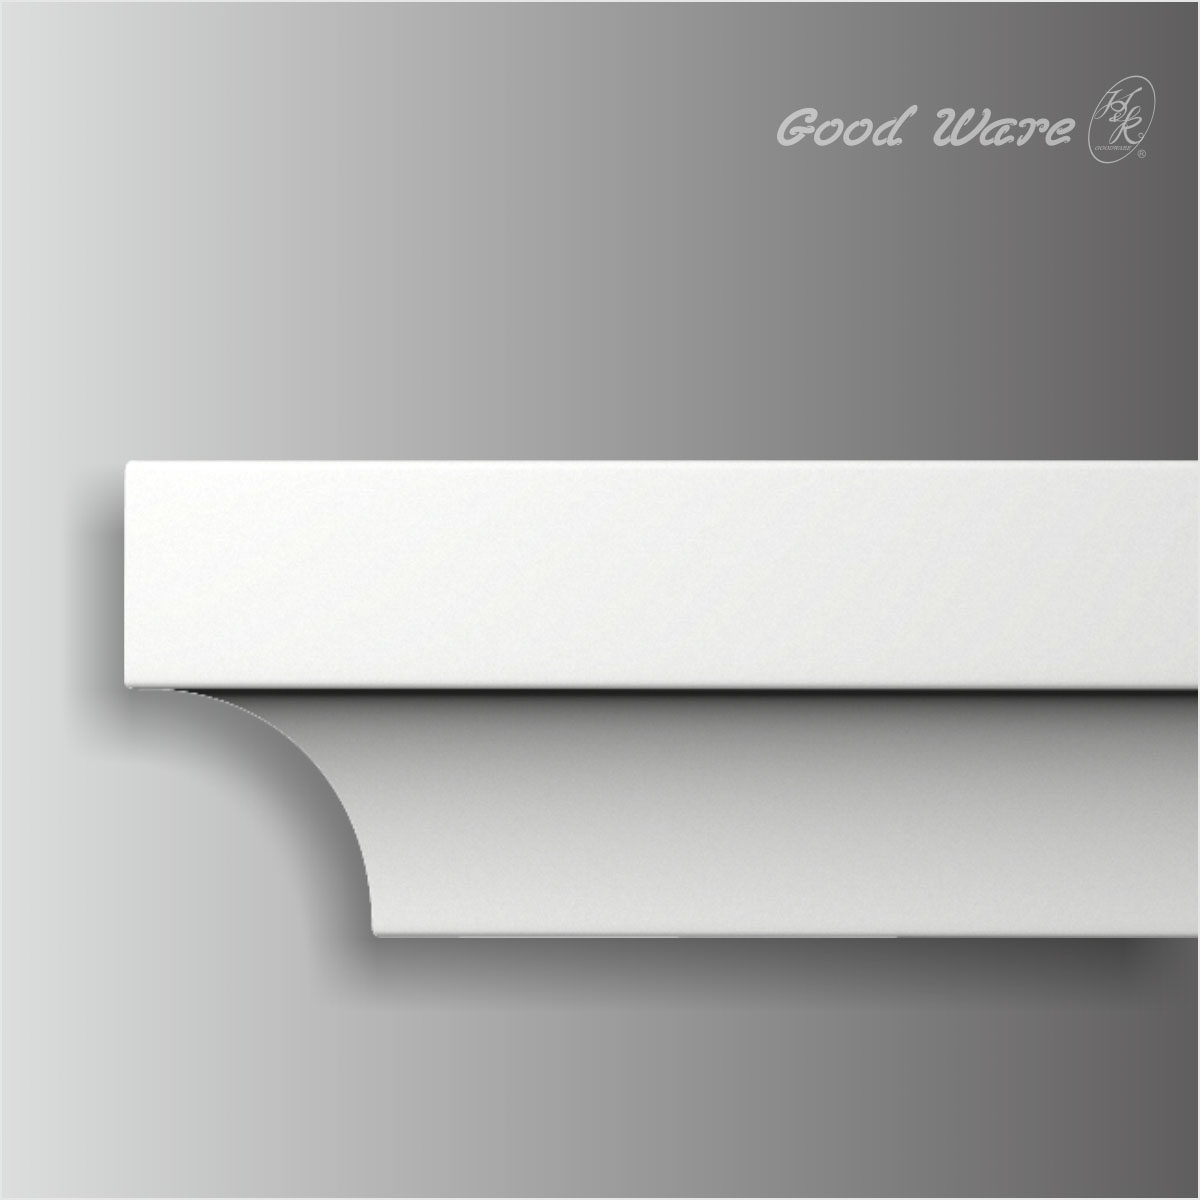 Polyurethane small simple 2 inch crown molding